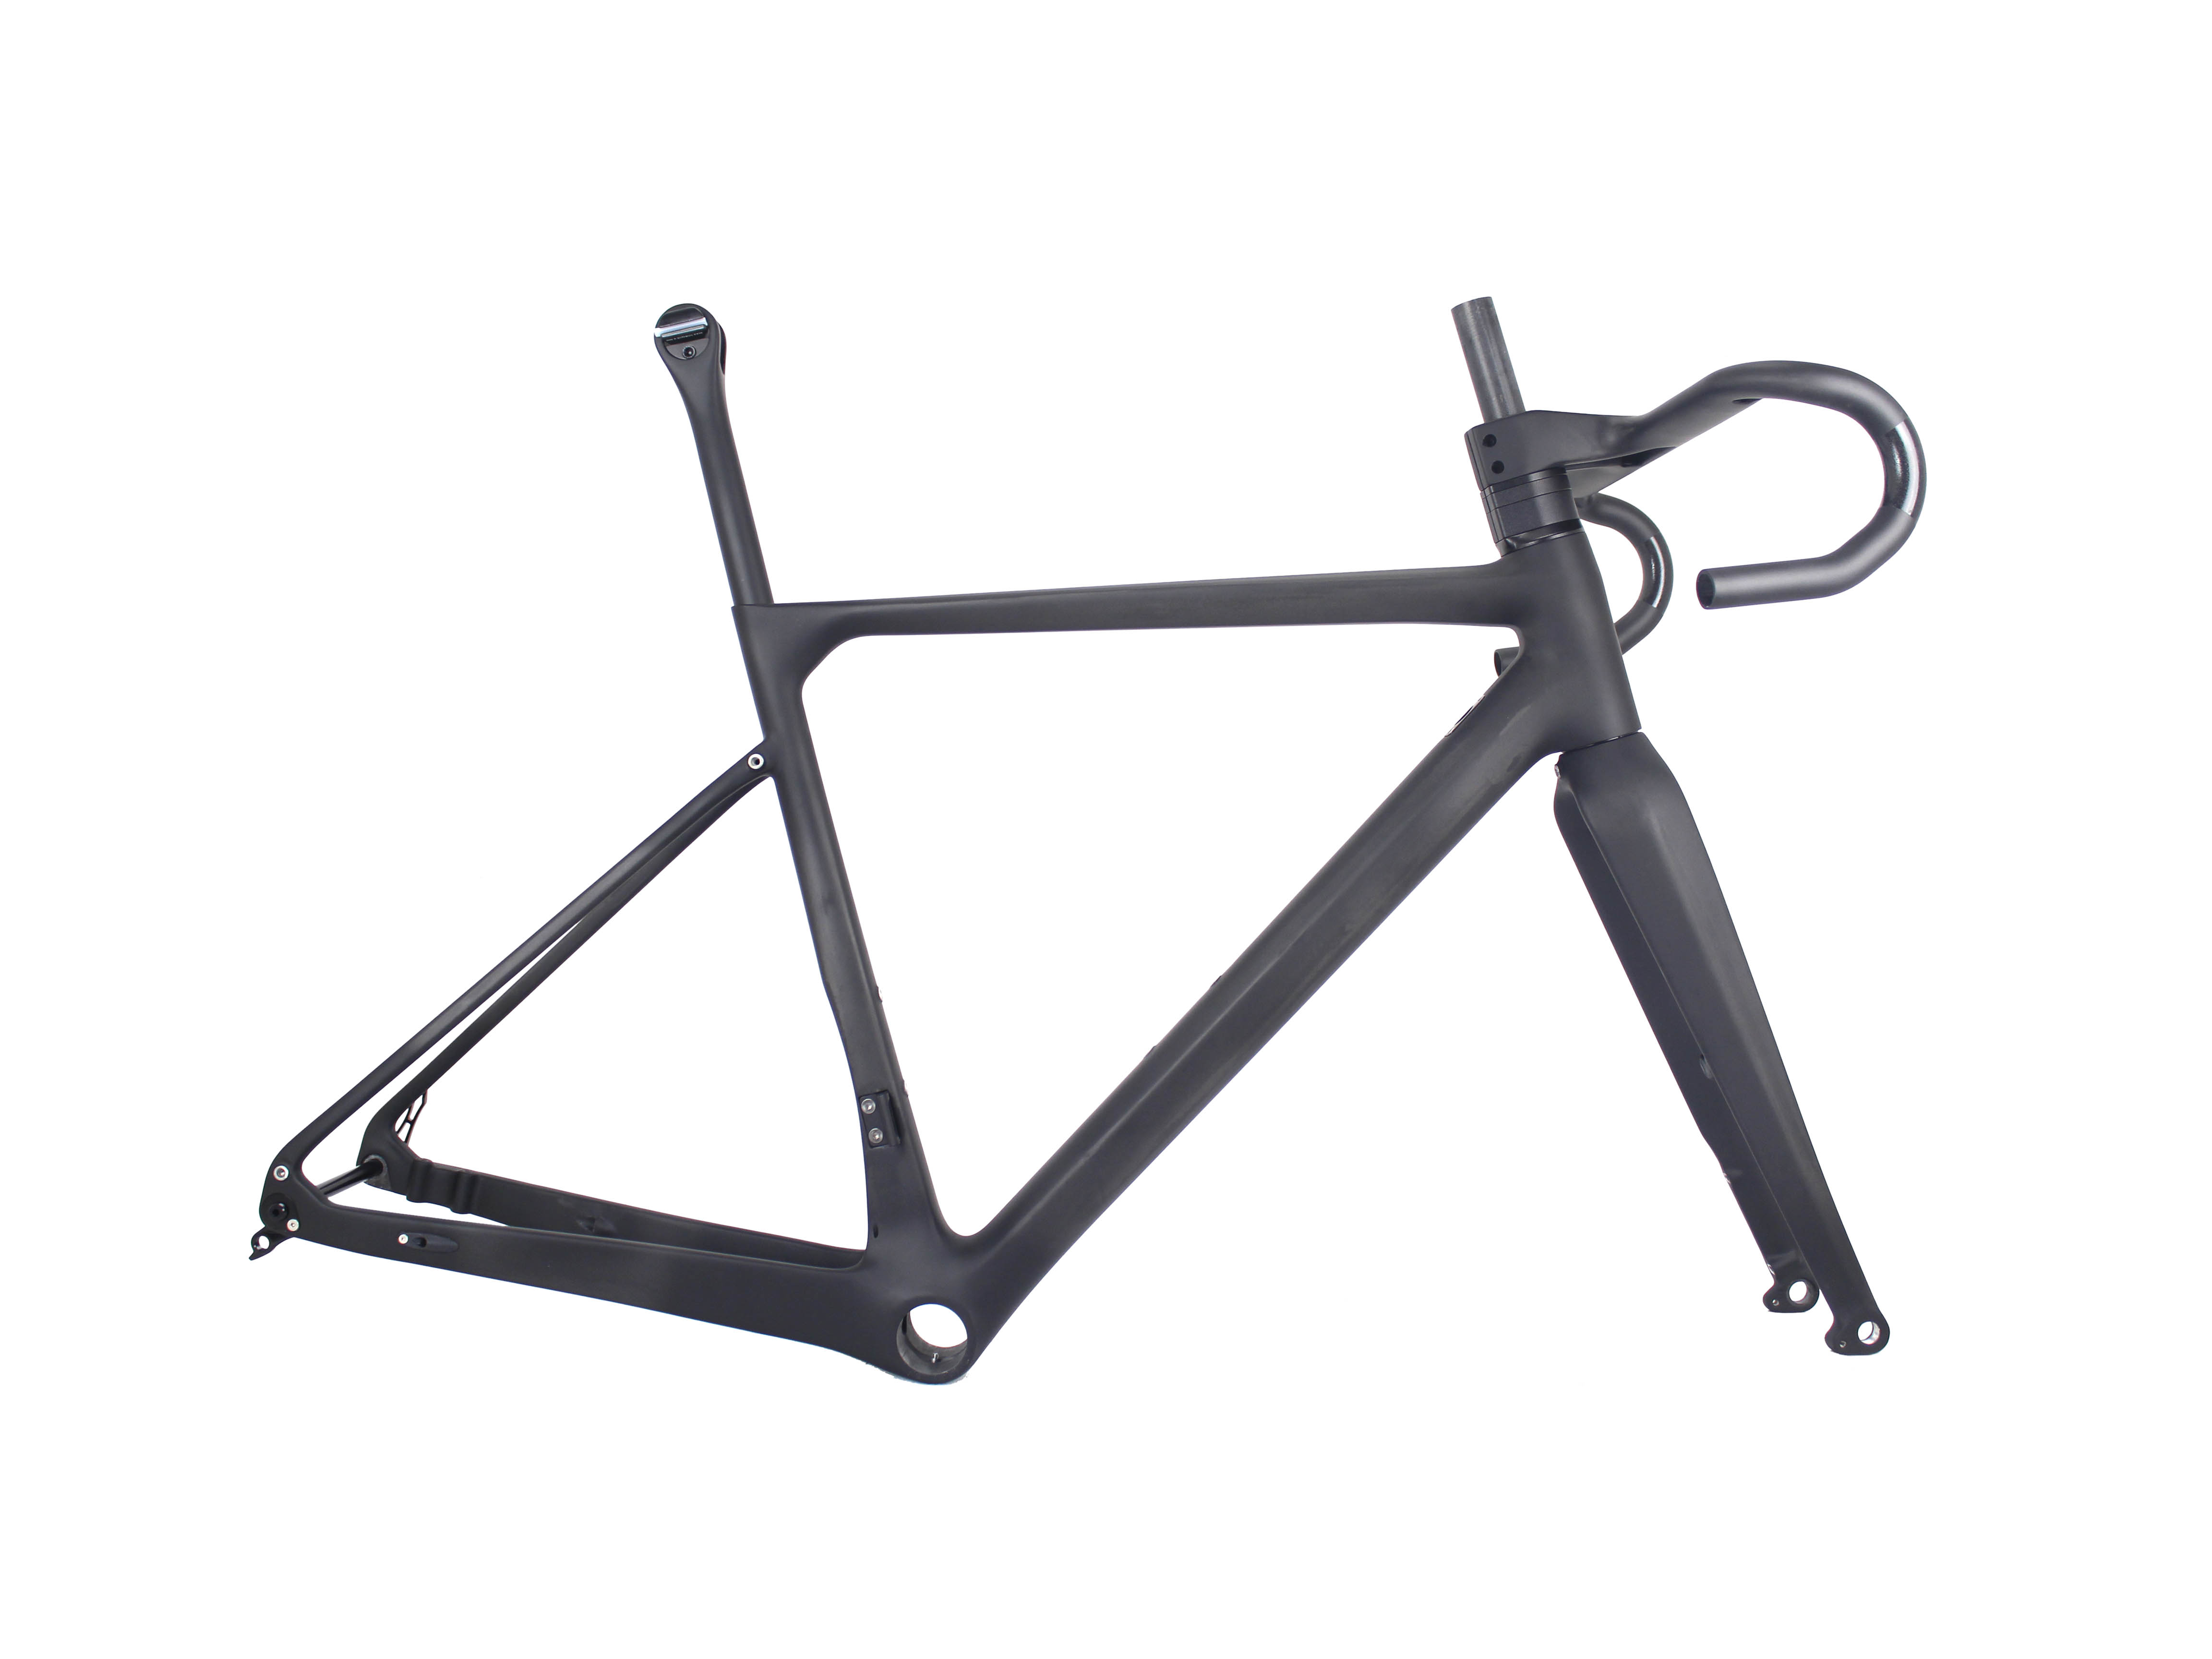 MIRACLE Bikes Super Light Thru Axle 700x40C Carbon Gravel Frame Di2&Mechanical 12*142mm Disc Carbon Bike Frame GR039